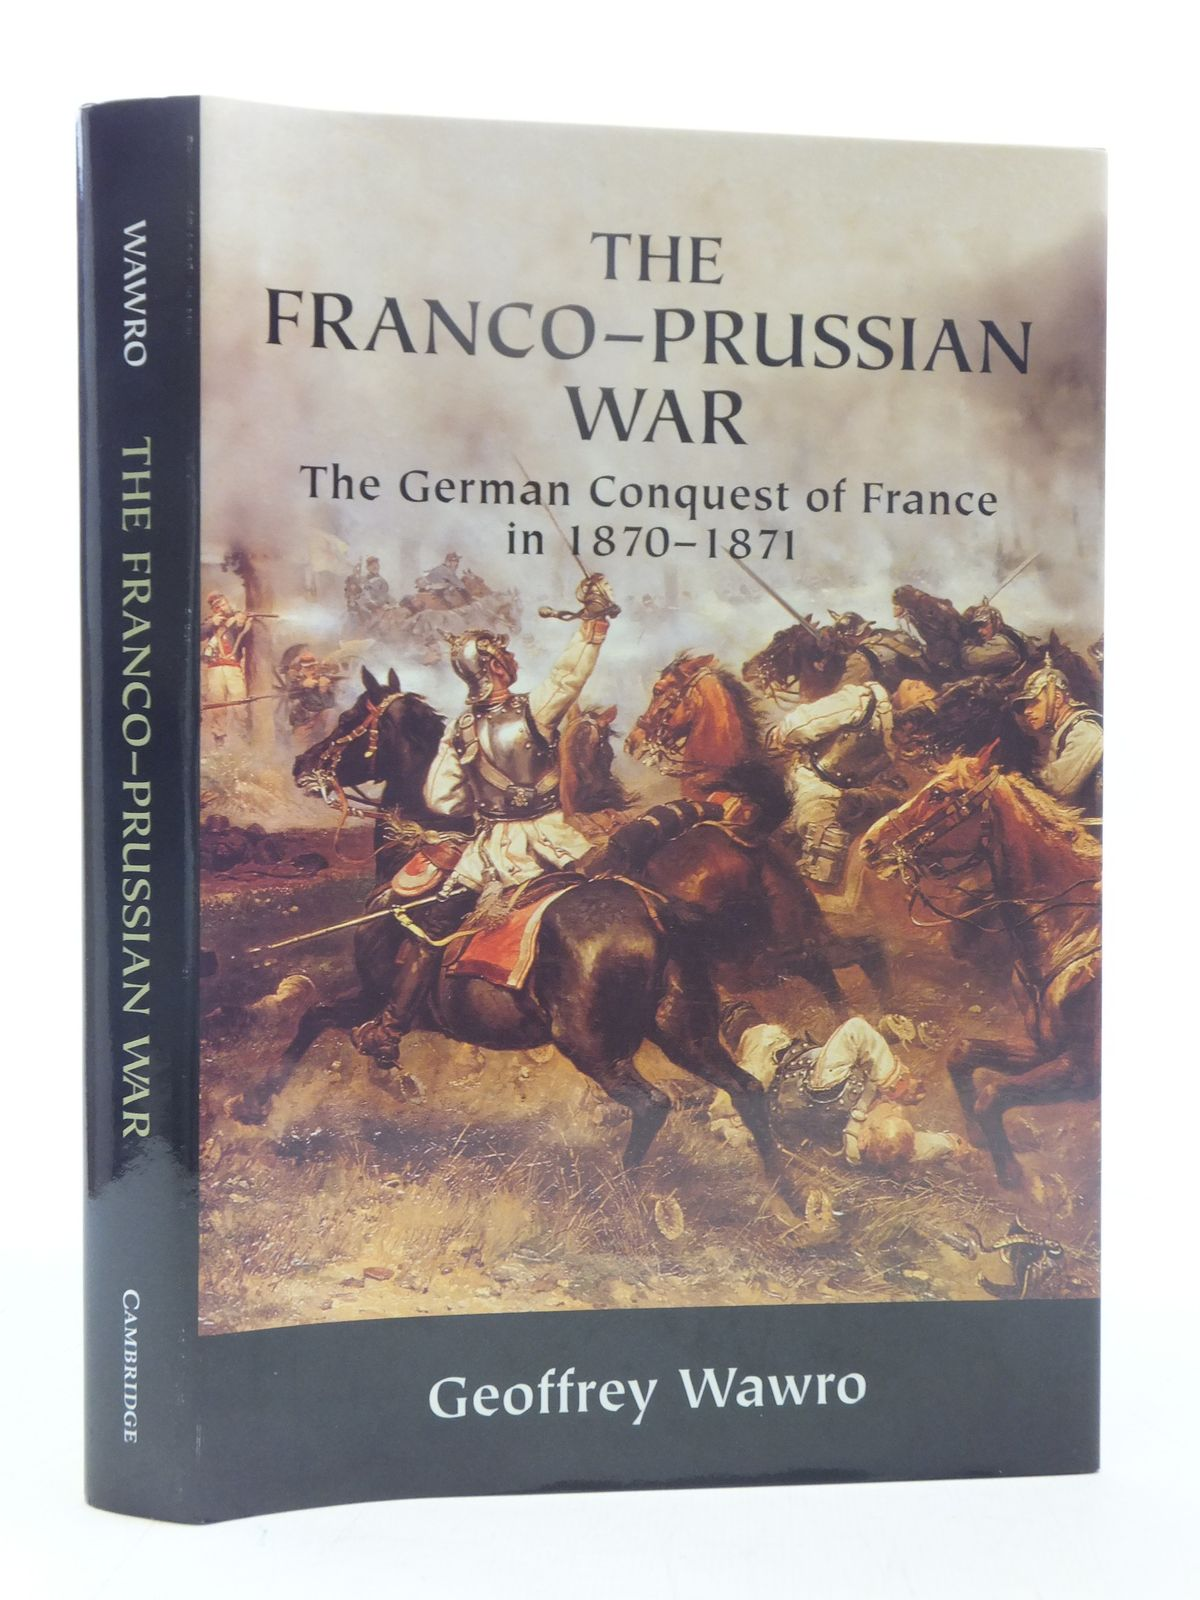 Photo of THE FRANCO-PRUSSIAN WAR written by Wawro, Geoffrey published by Cambridge University Press (STOCK CODE: 1607323)  for sale by Stella & Rose's Books